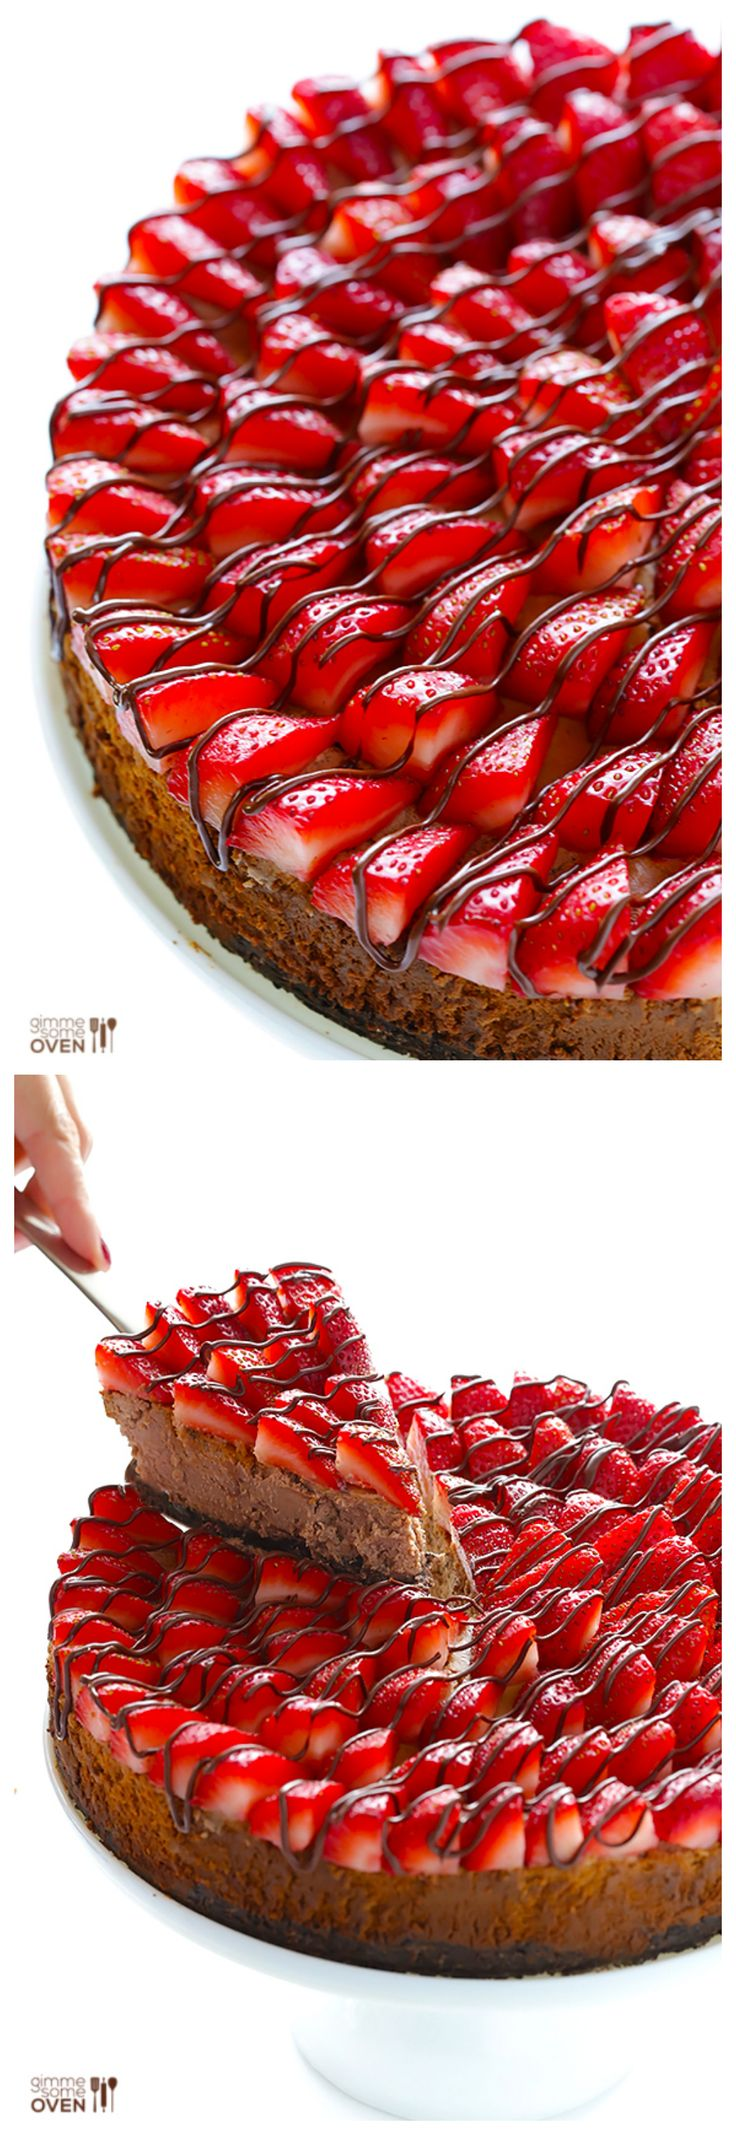 #-Versand von SMS  #-Strawberry-# #--- #--- -# #--- #--  Nutella Cheesecake.